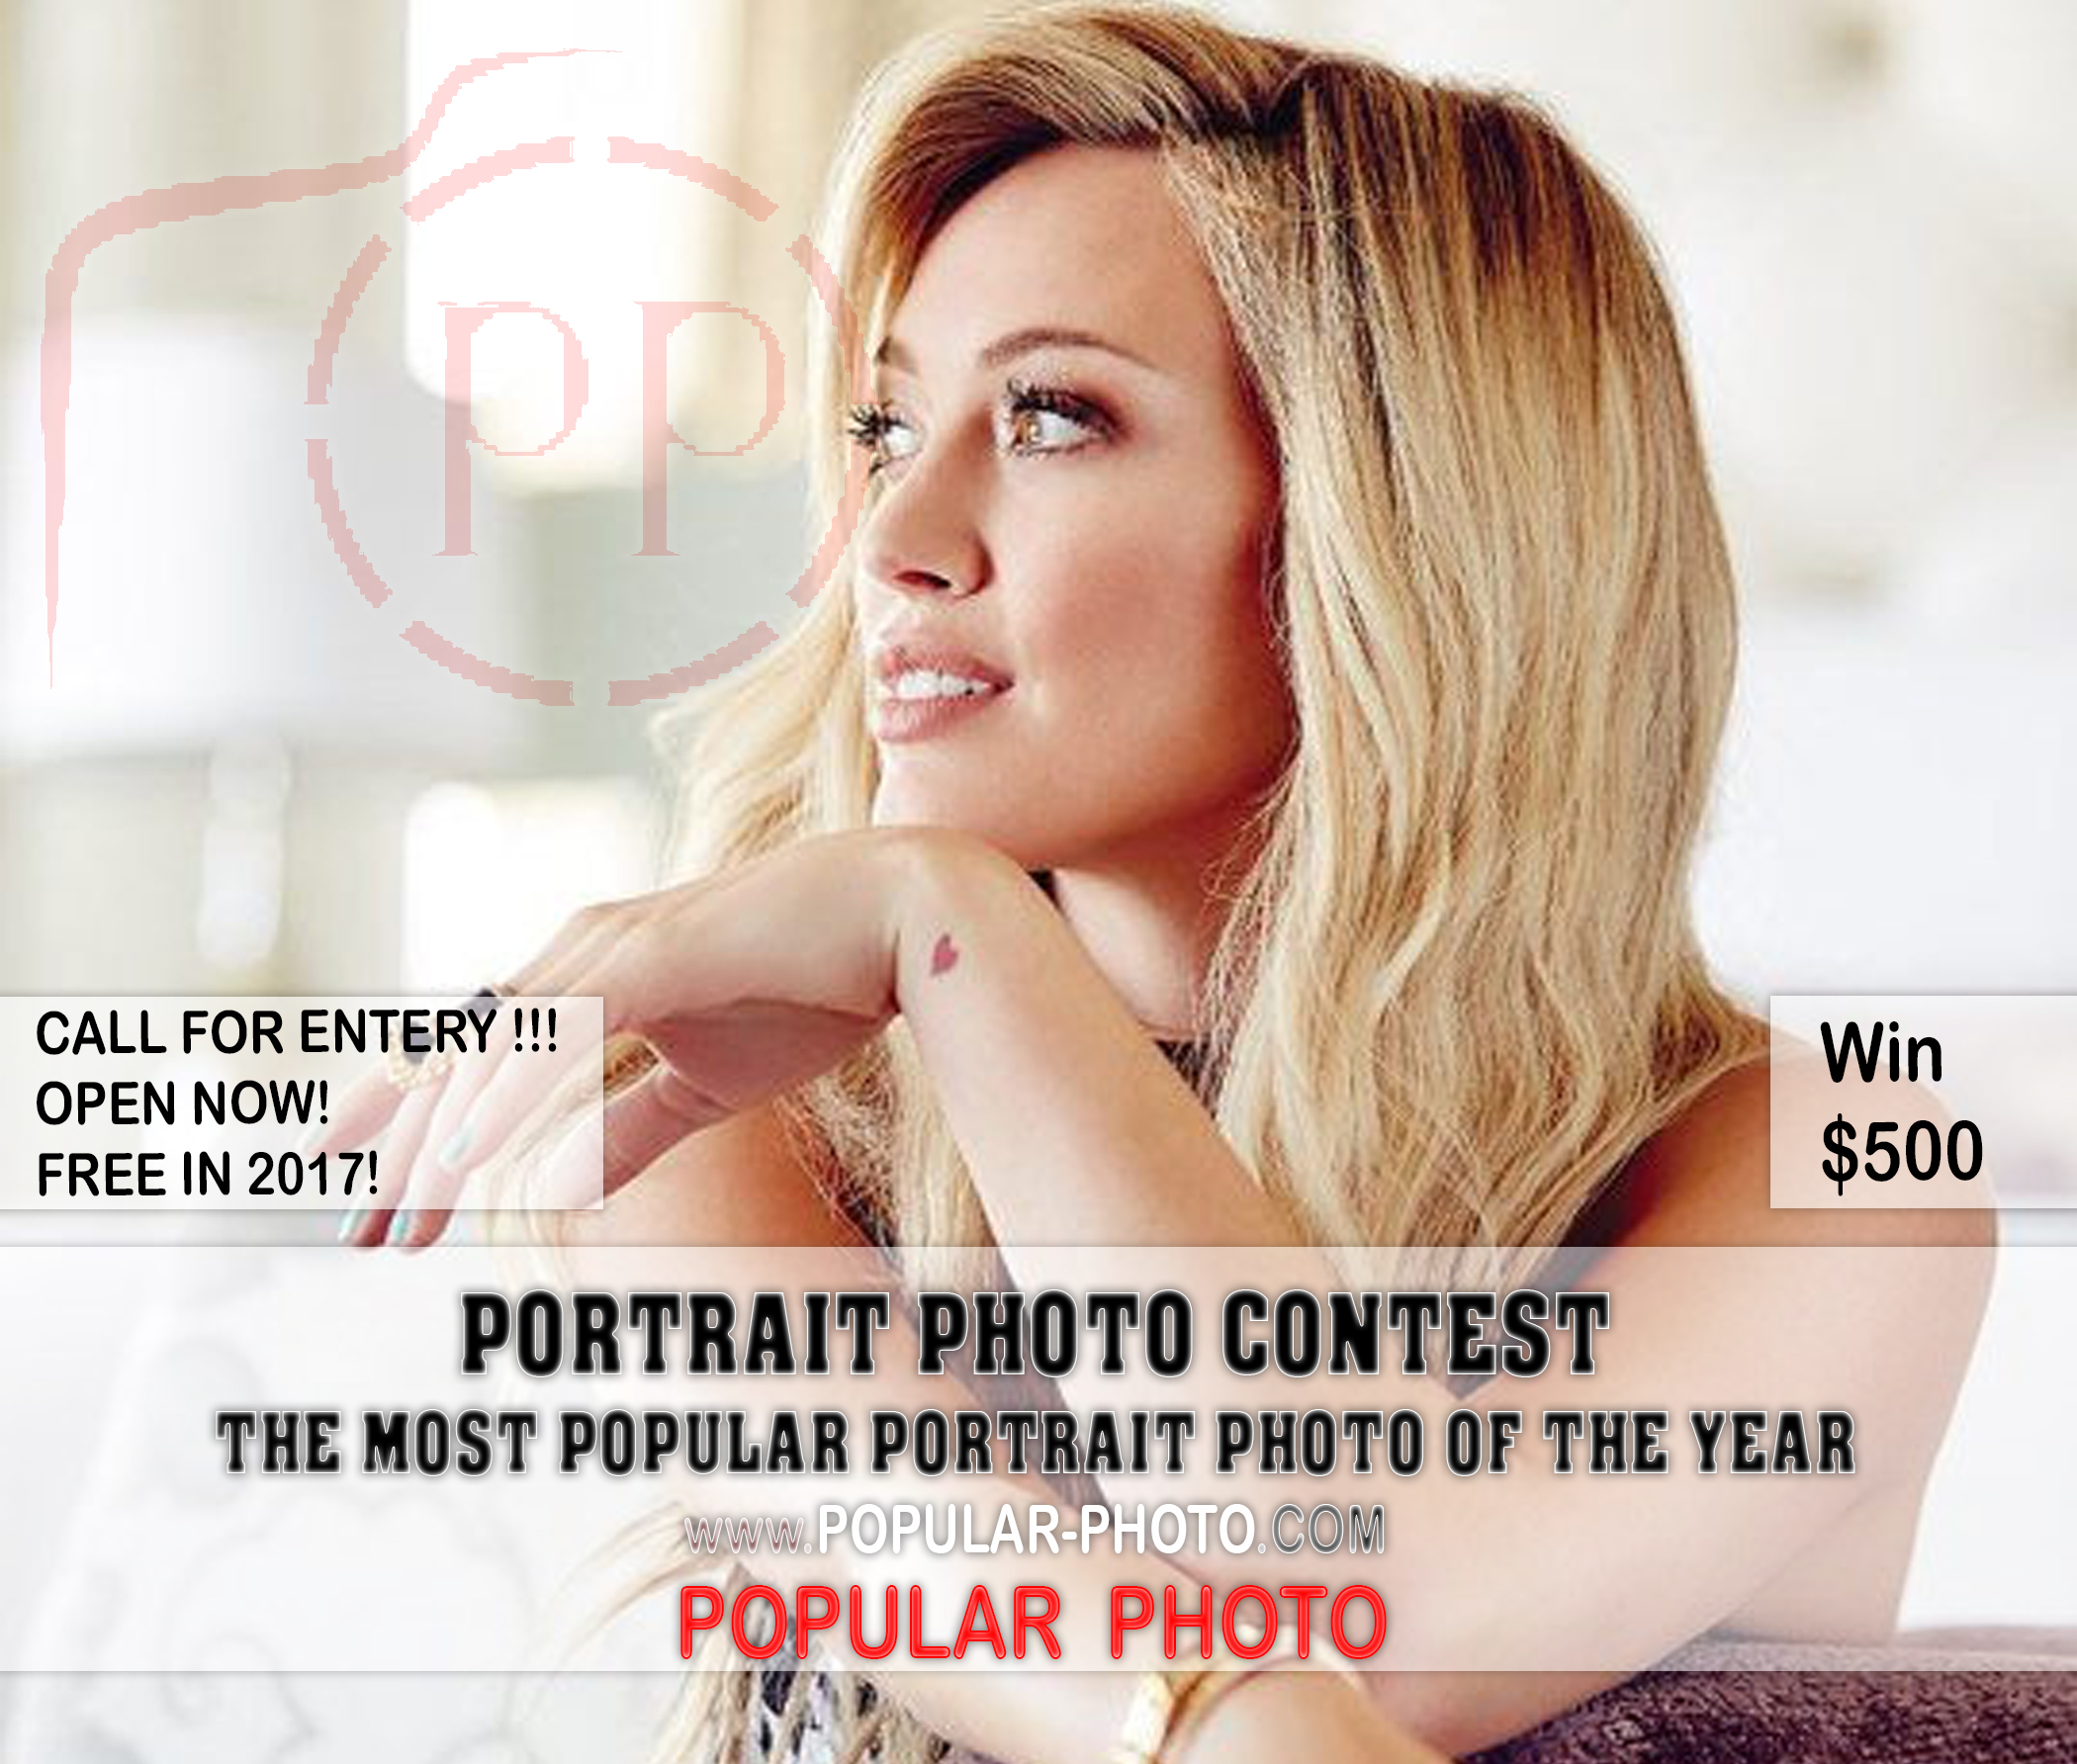 The popular portrait photo contest